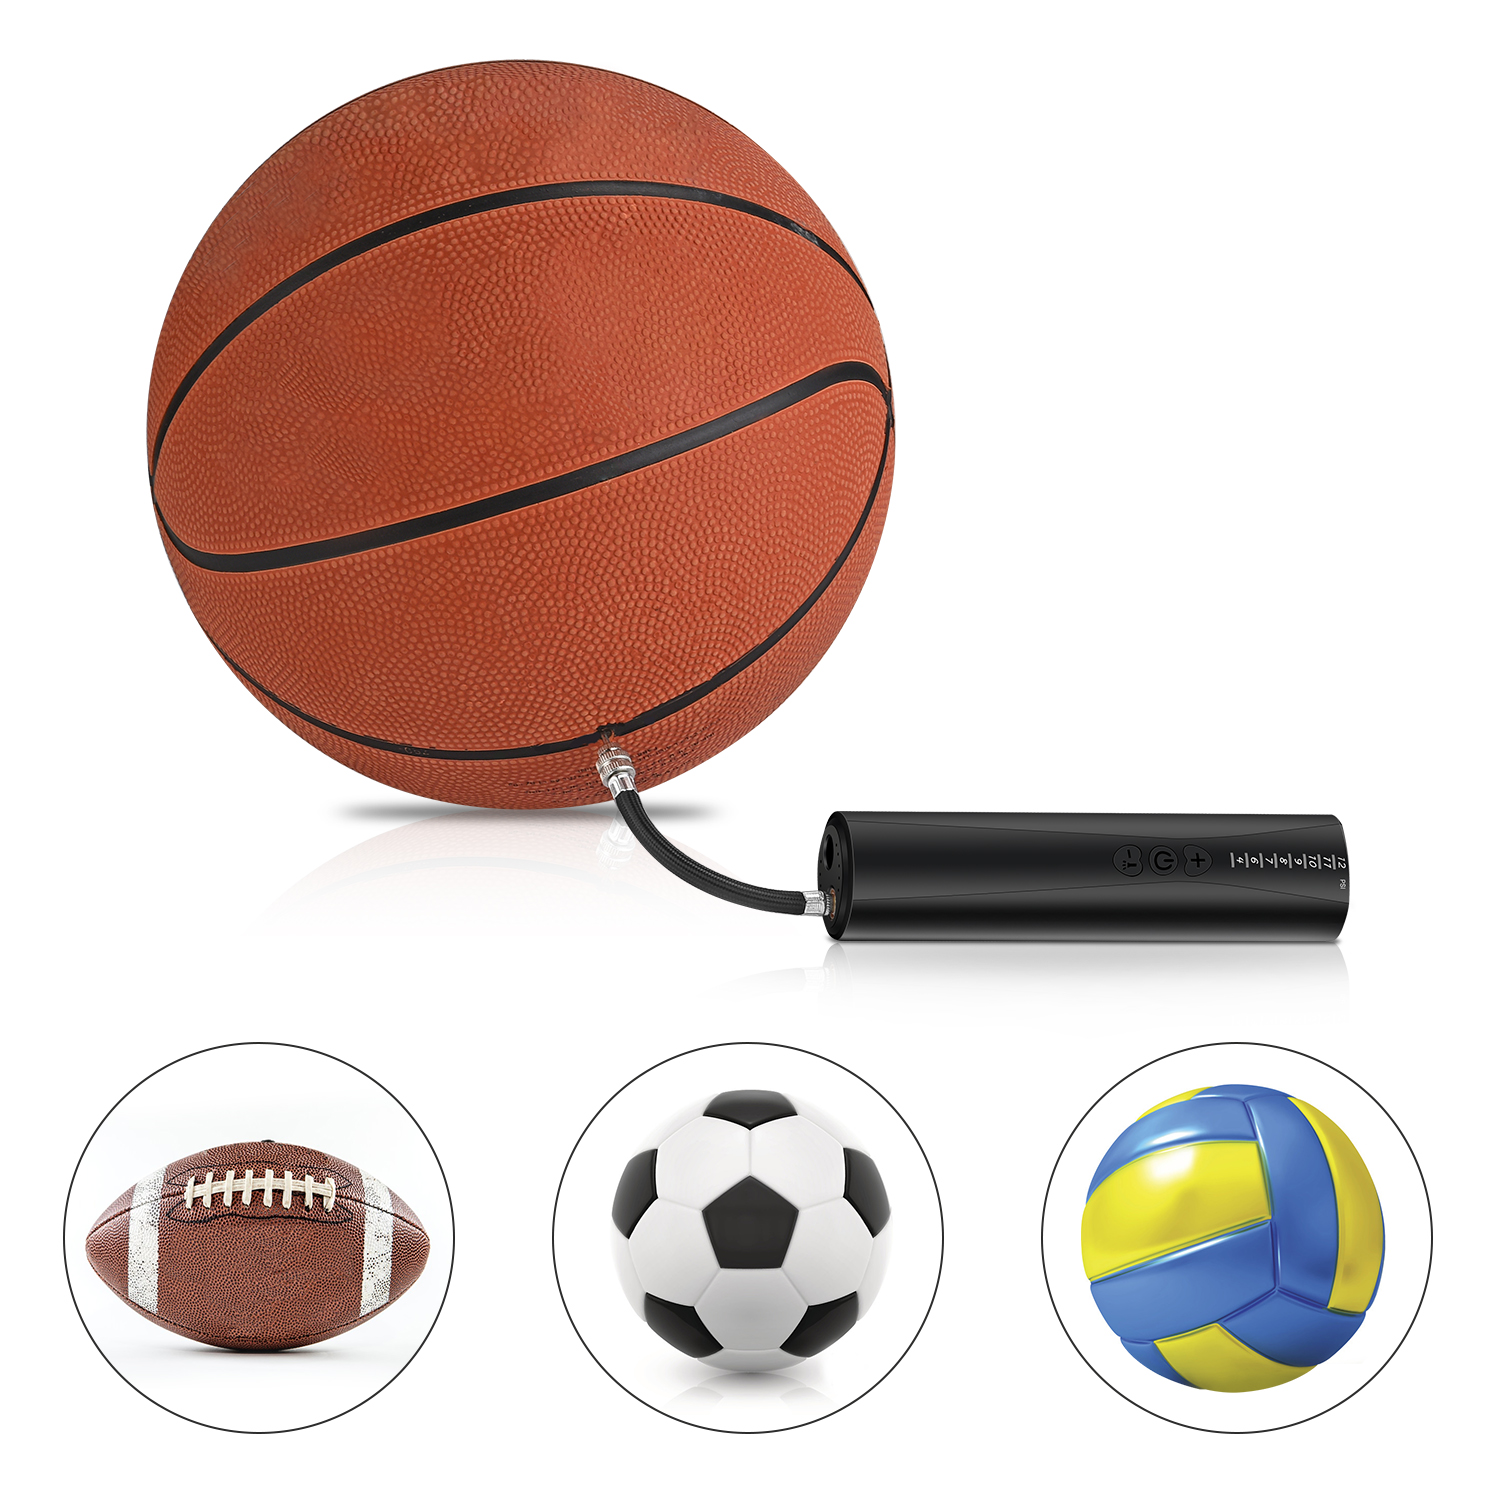 Volleyball Football Zacro Automatic Electric Ball Pump with 7 Needles Water Polo Hand held Pump to Fast inflate Soccer Basketball Fast Ball Pump Powered by Battery Rugby Handball etc